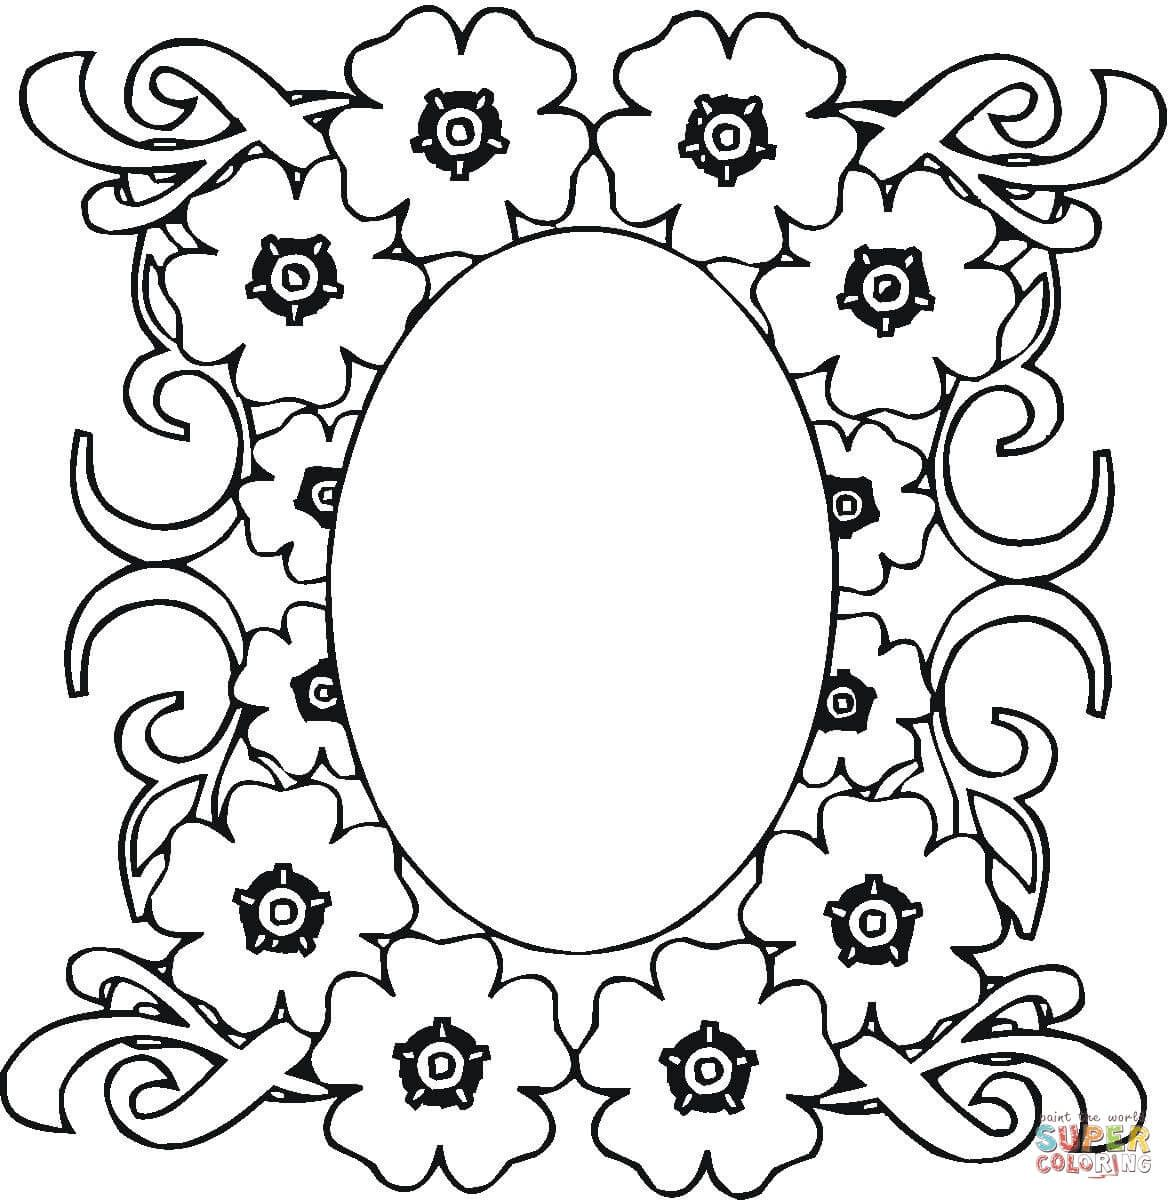 Mirror In The Flowers Ornament Coloring Page Free Printable Coloring Pages Flower Coloring Pages Free Printable Coloring Pages Coloring Pages